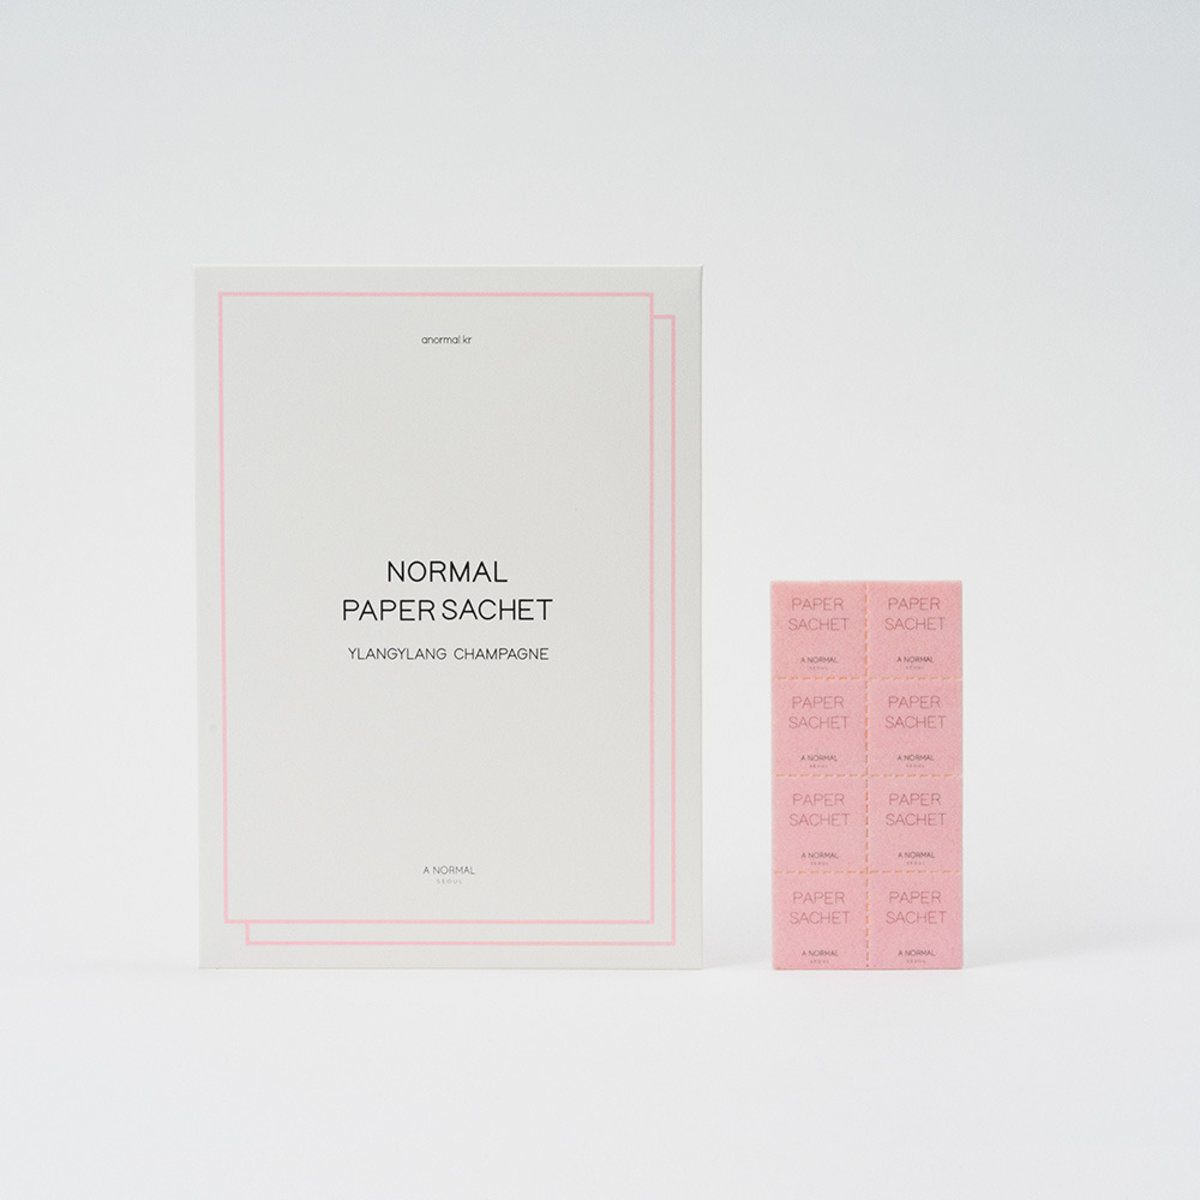 Anormal Normal Paper Sachet YIang YIang Champagne